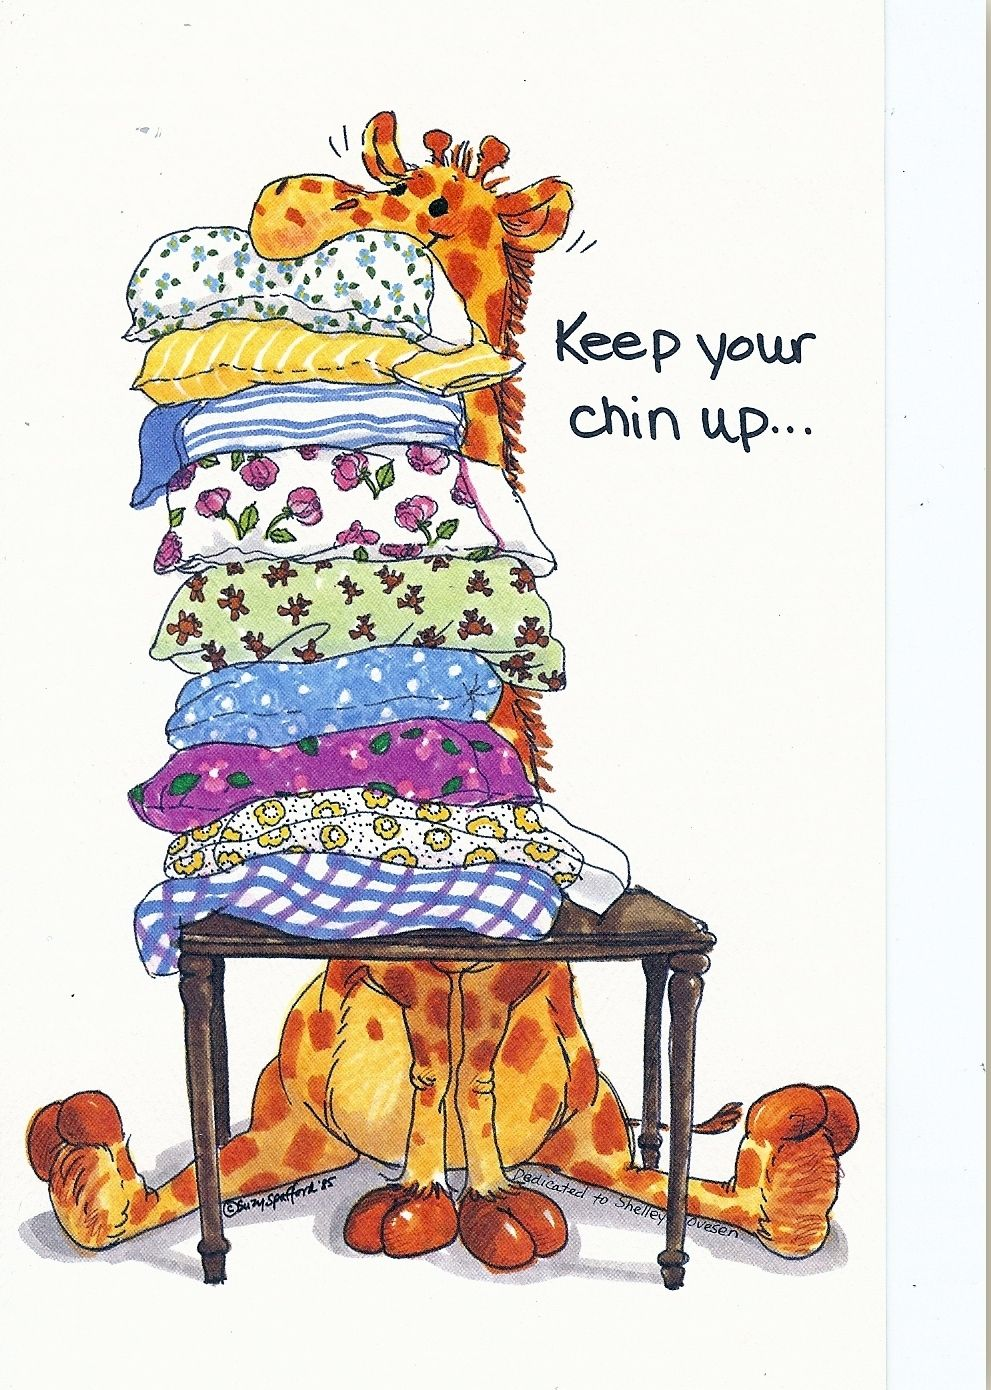 Giraffe keep your suzy. Chin clipart chin up